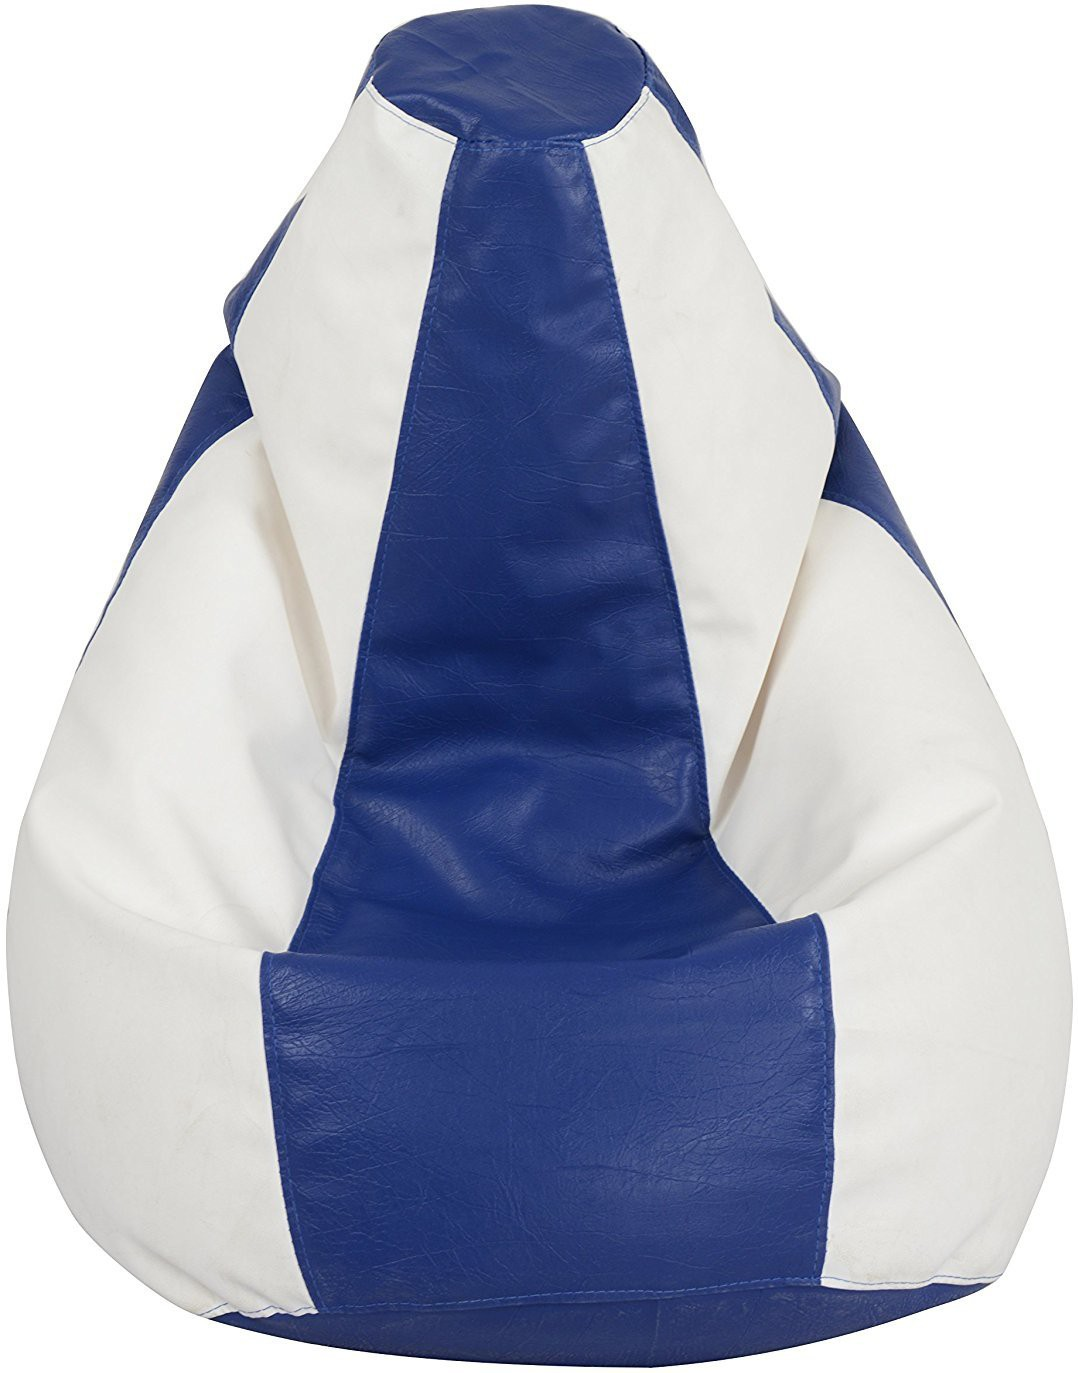 View styleaf XXL Bean Bag Cover(Blue, White) Furniture (styleaf)